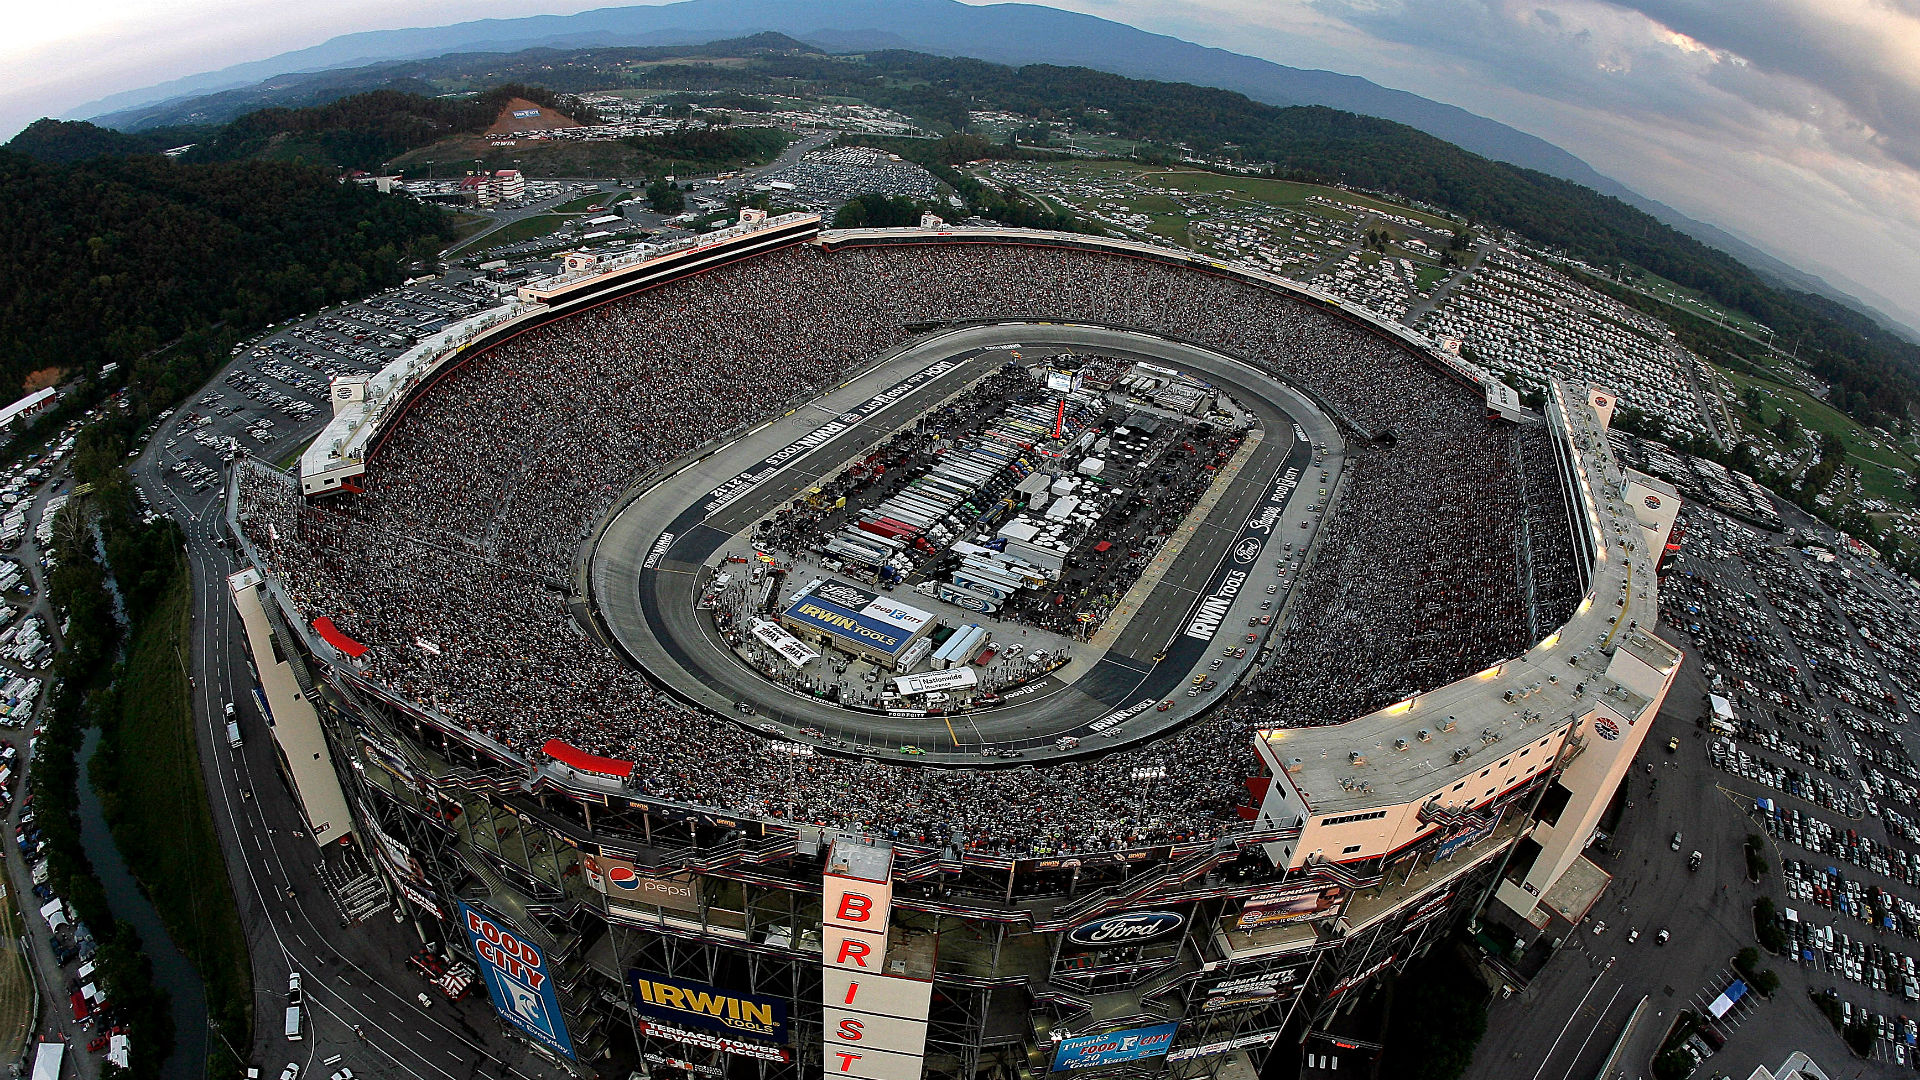 NASCAR at Bristol 2018: TV schedule, standings, qualifying drivers for Food City 500